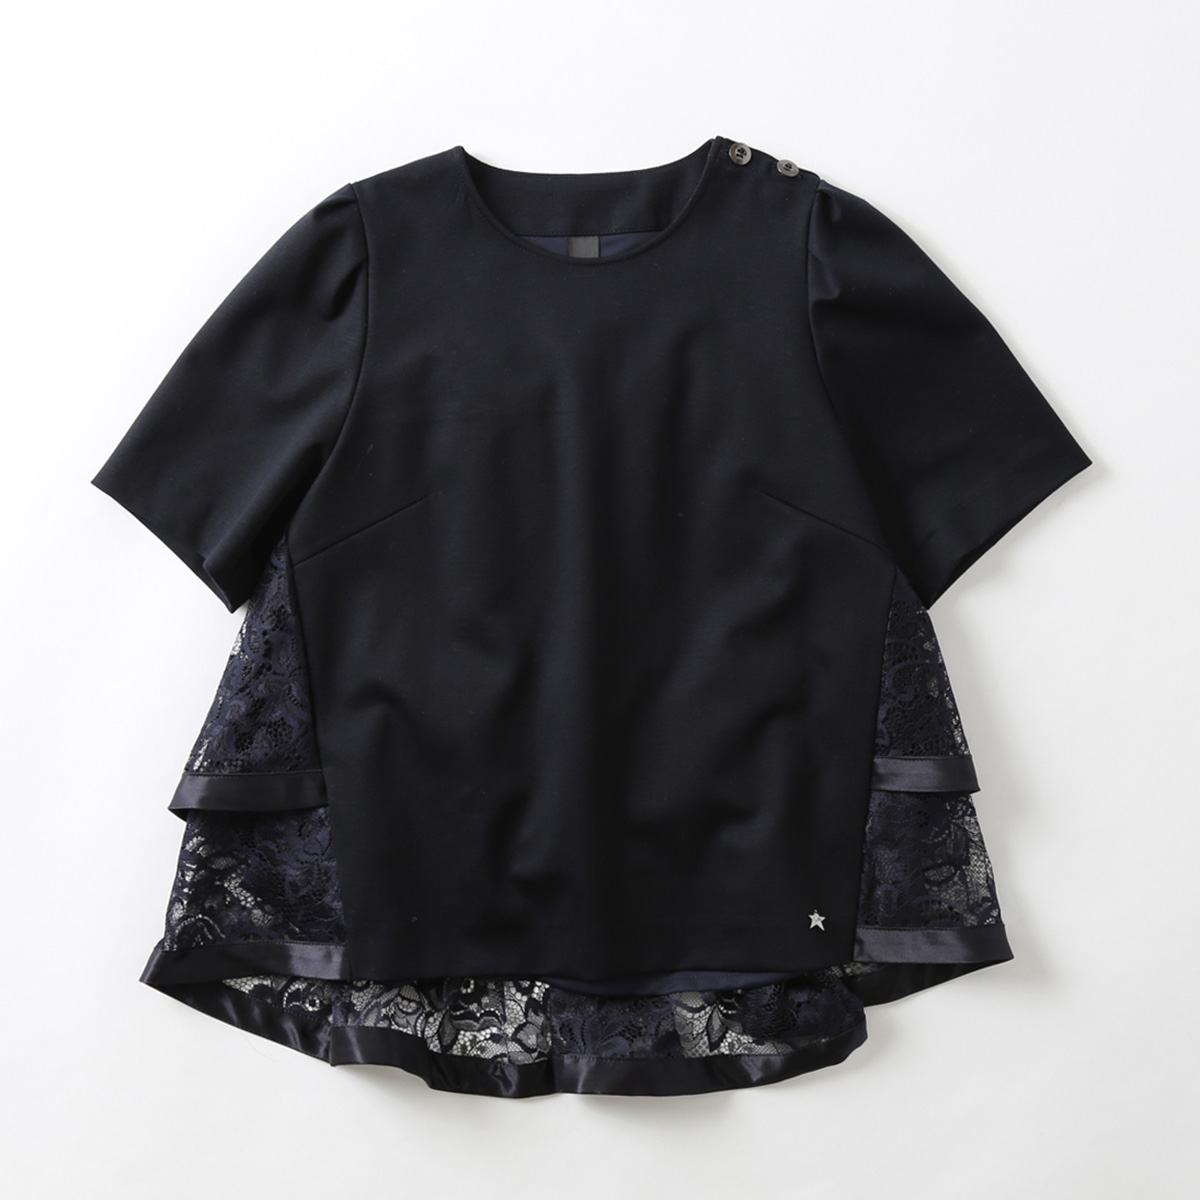 『Dress knit』 Back Tiered Lace Blouse NAVY画像